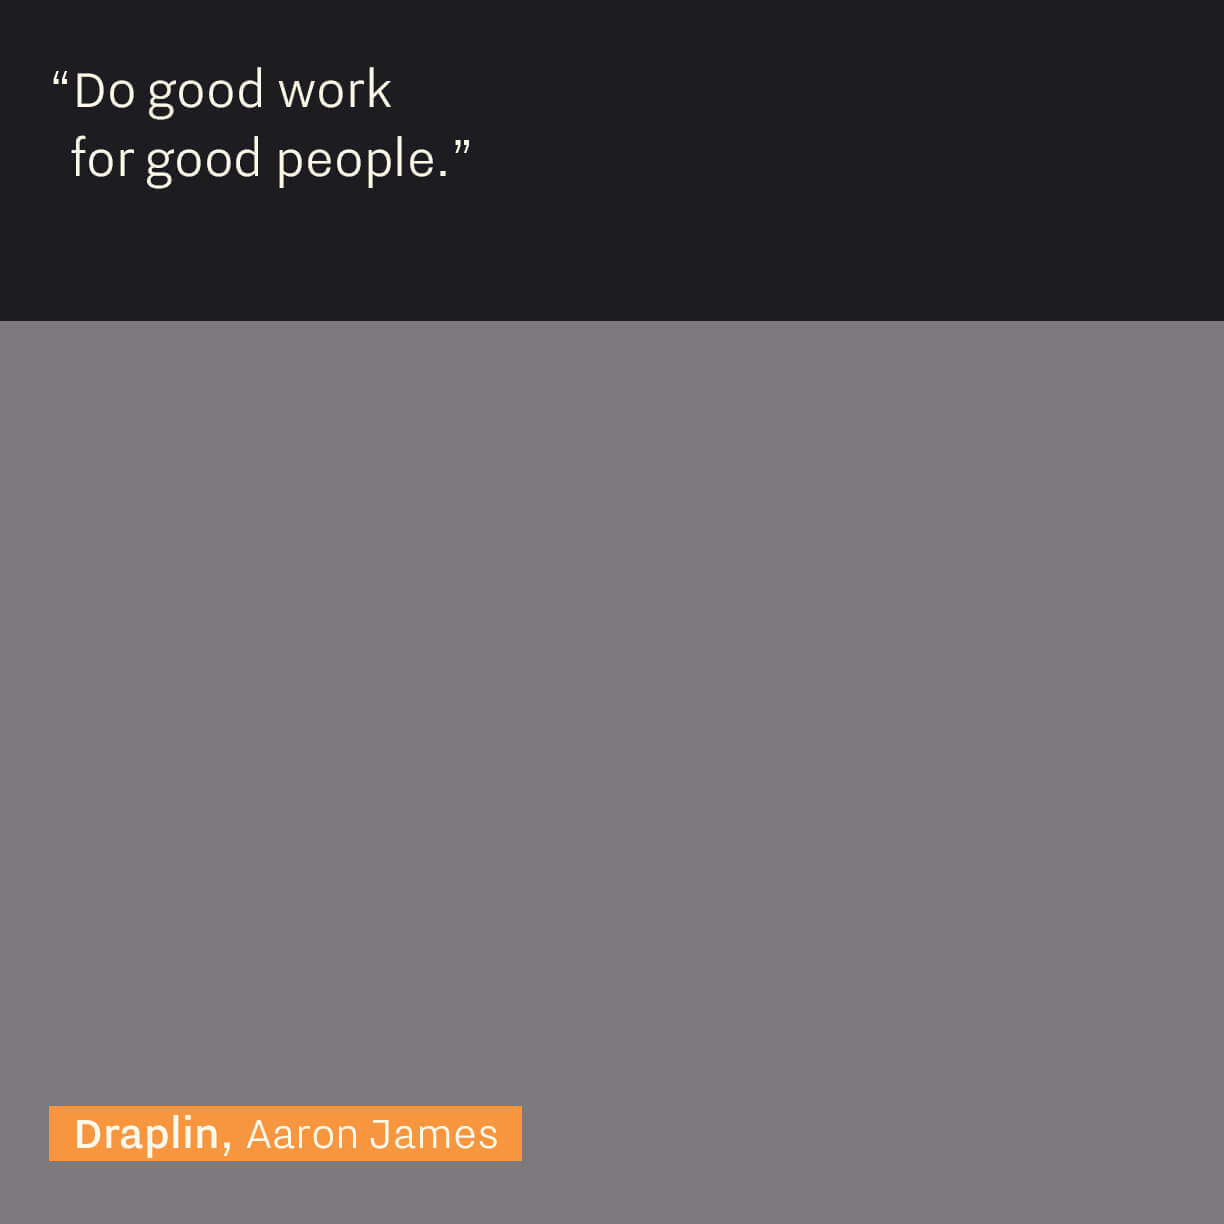 4p_social_quotes_007